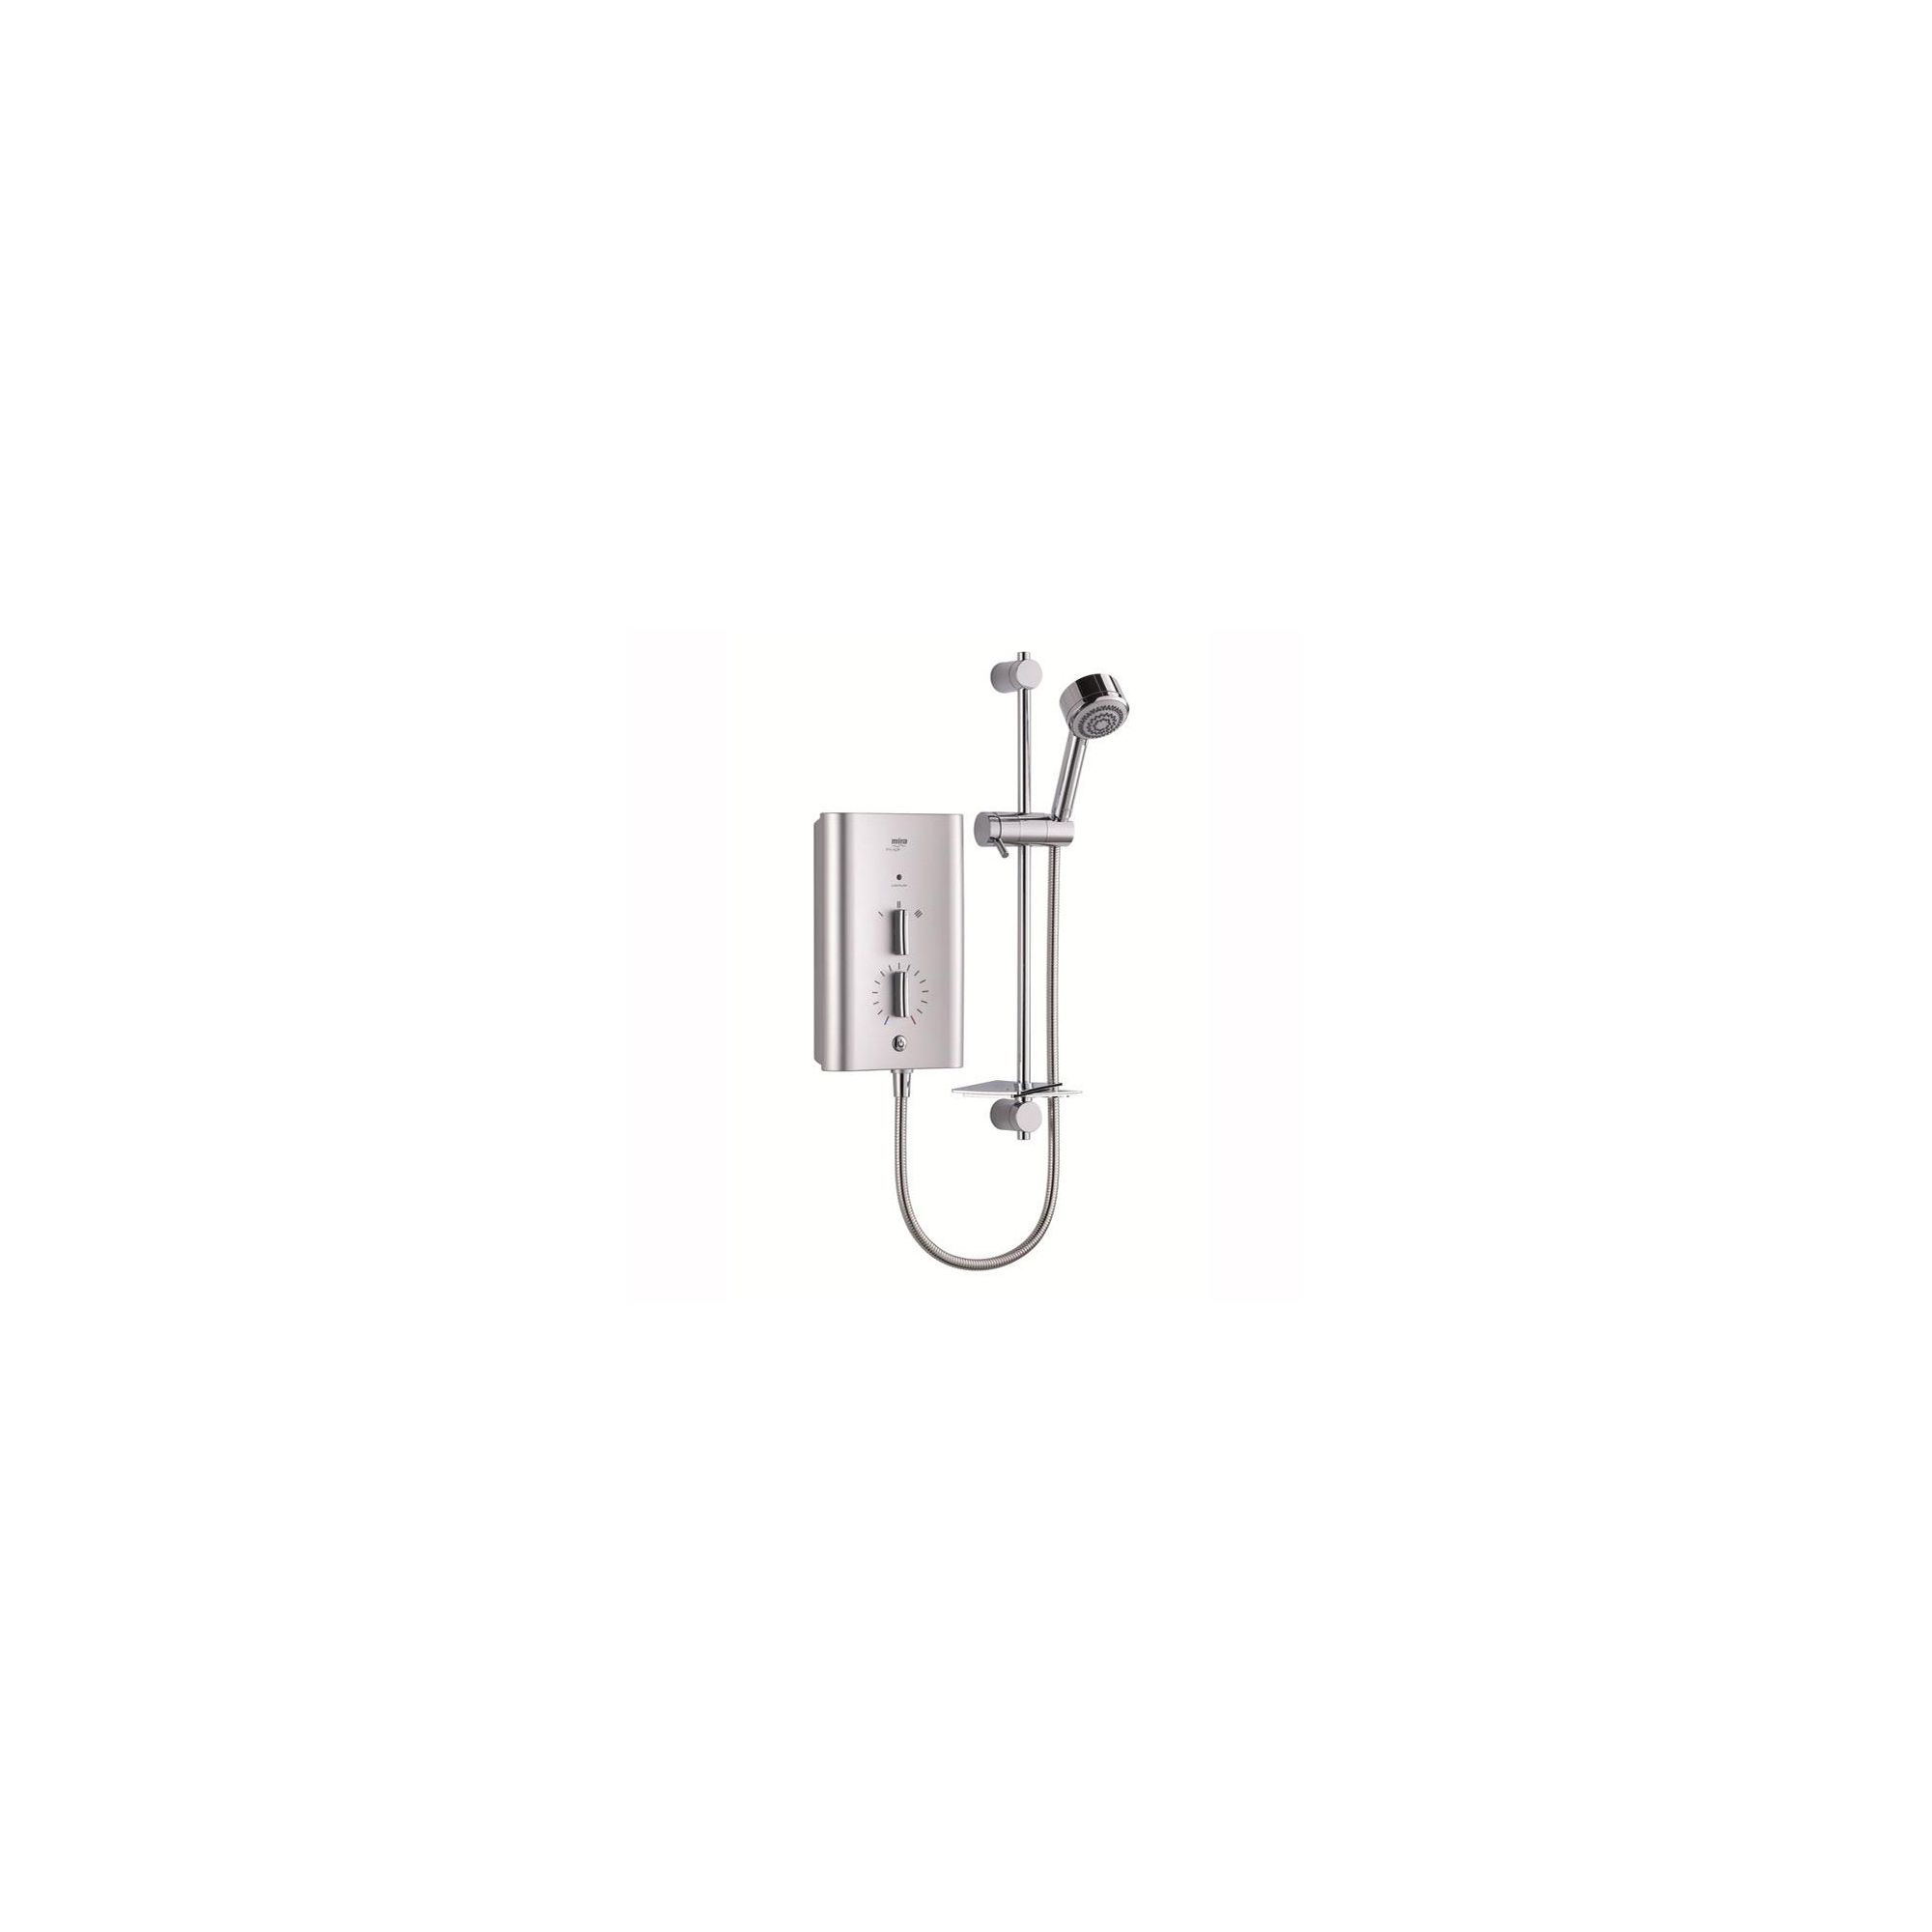 Mira Escape 9.8 kW Electric Shower, 4 Spray Handset, Satin Chrome at Tesco Direct